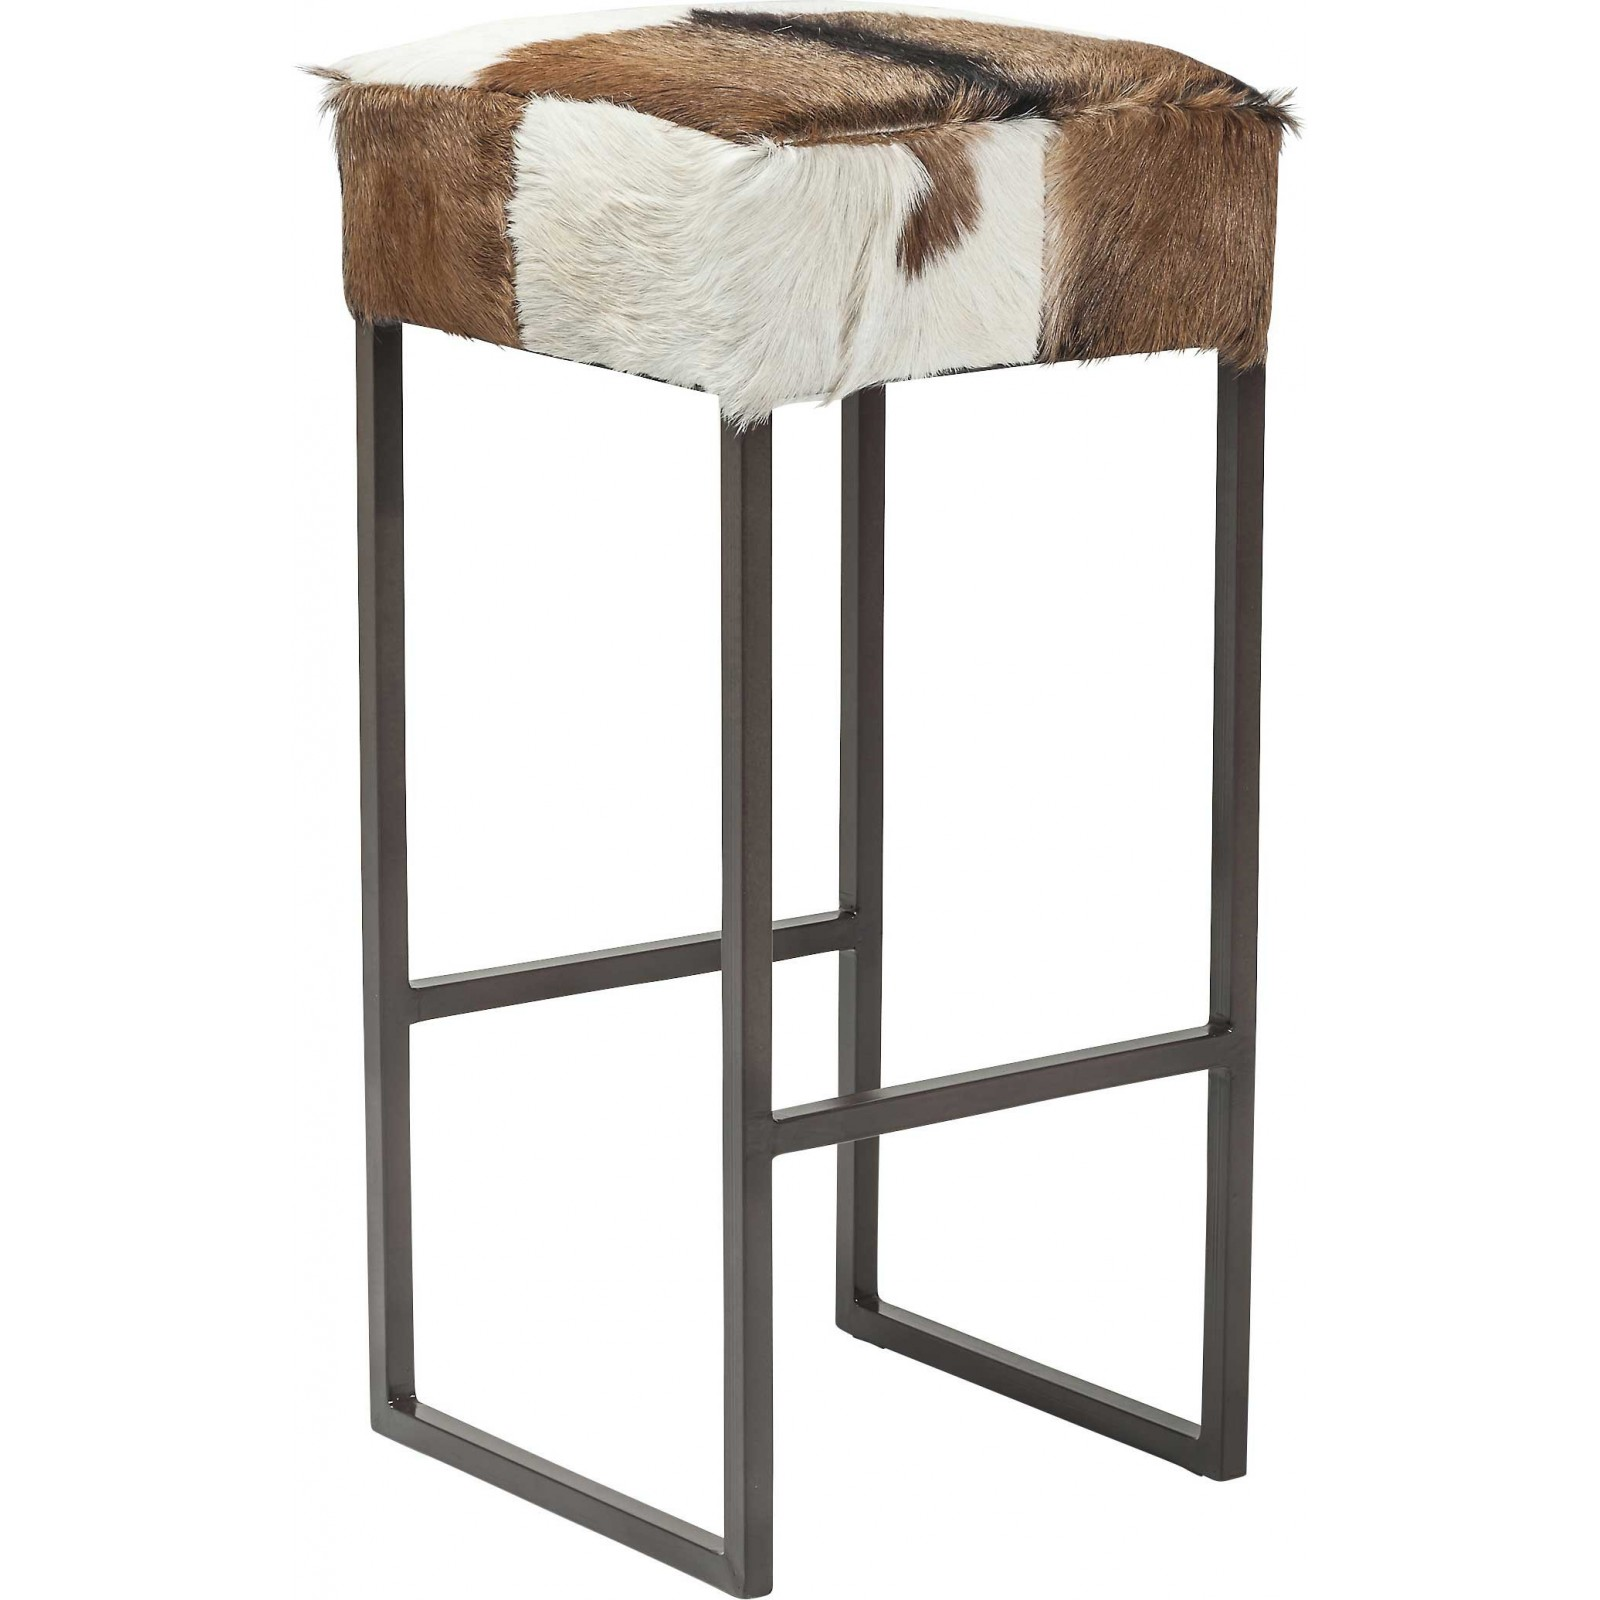 tabouret de bar rustique marron country life kare design. Black Bedroom Furniture Sets. Home Design Ideas